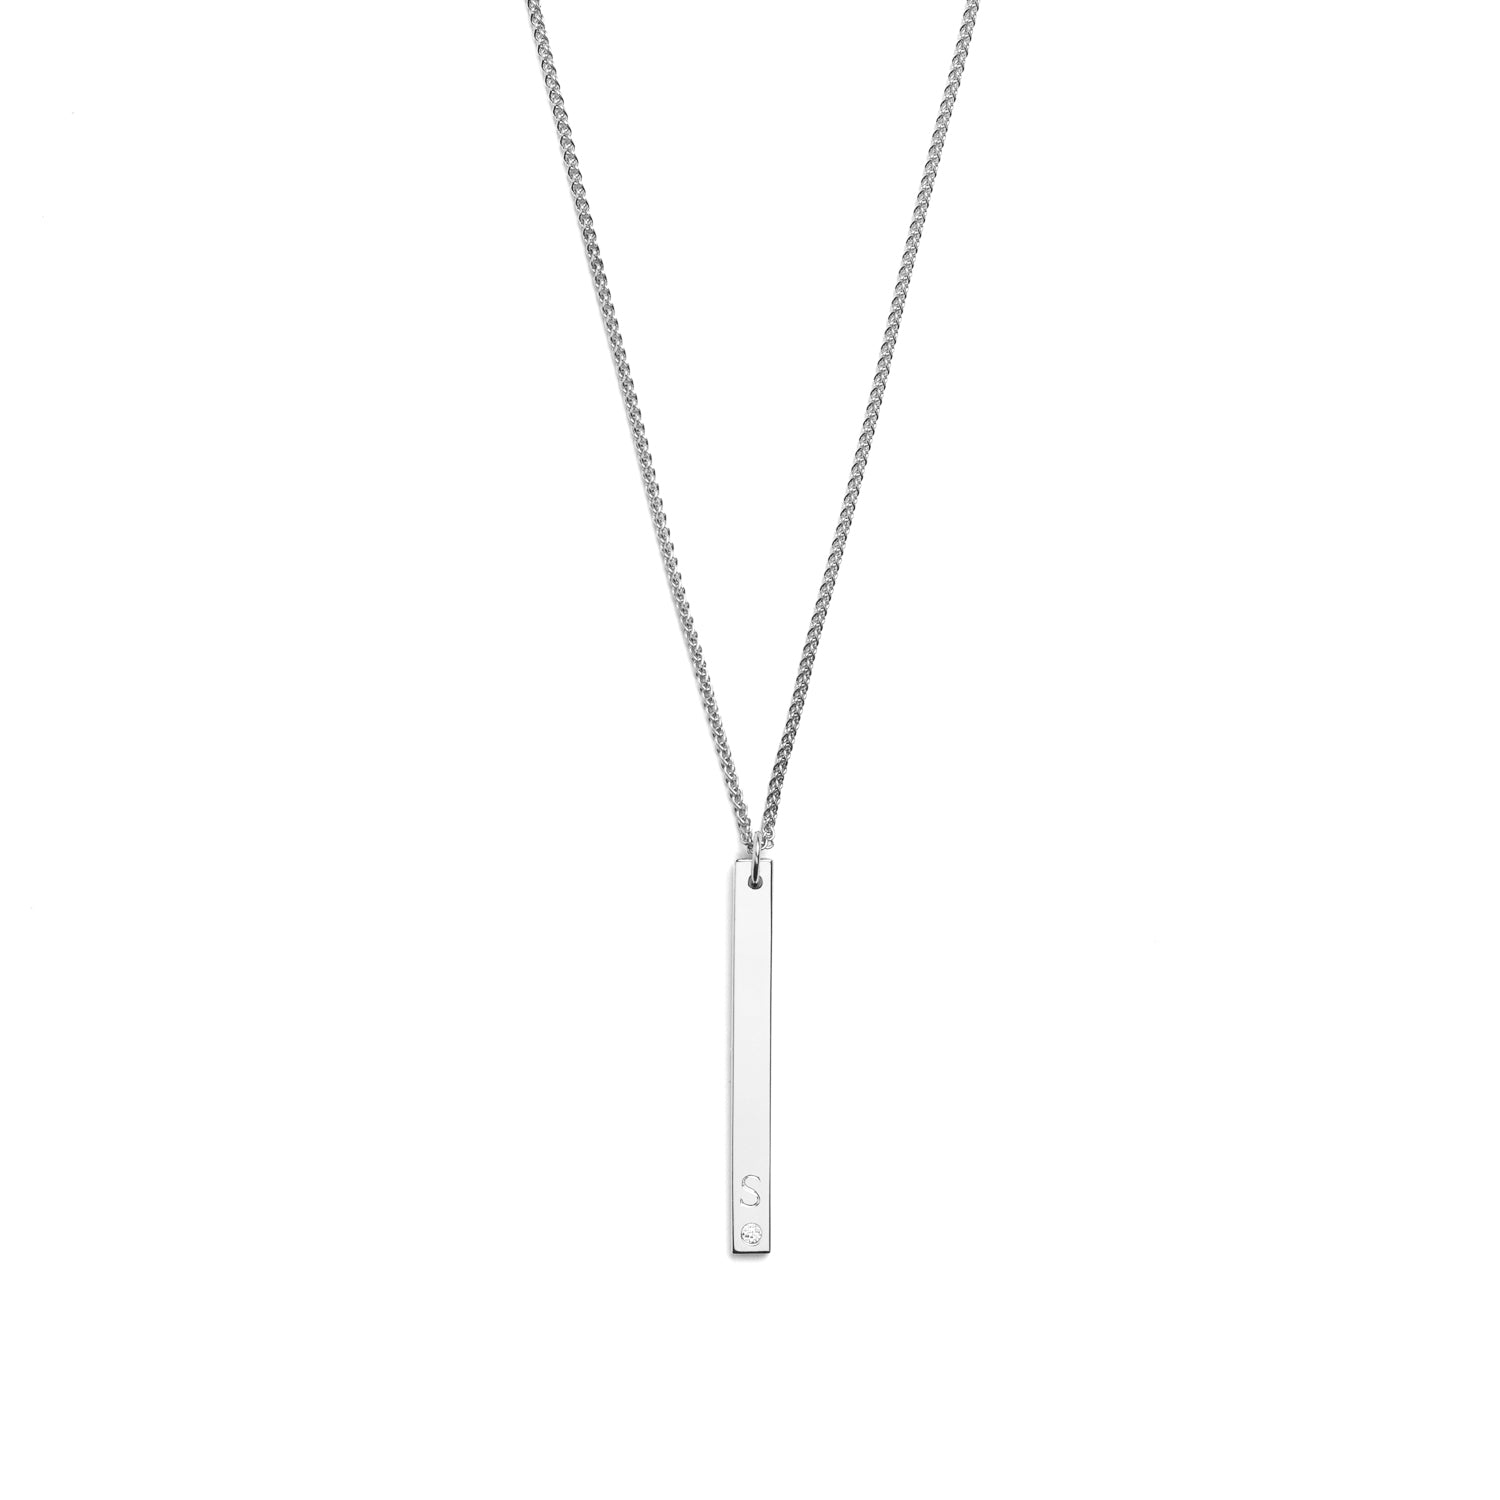 Selin Kent 14K Gaia Vertical Necklace with One White Diamond